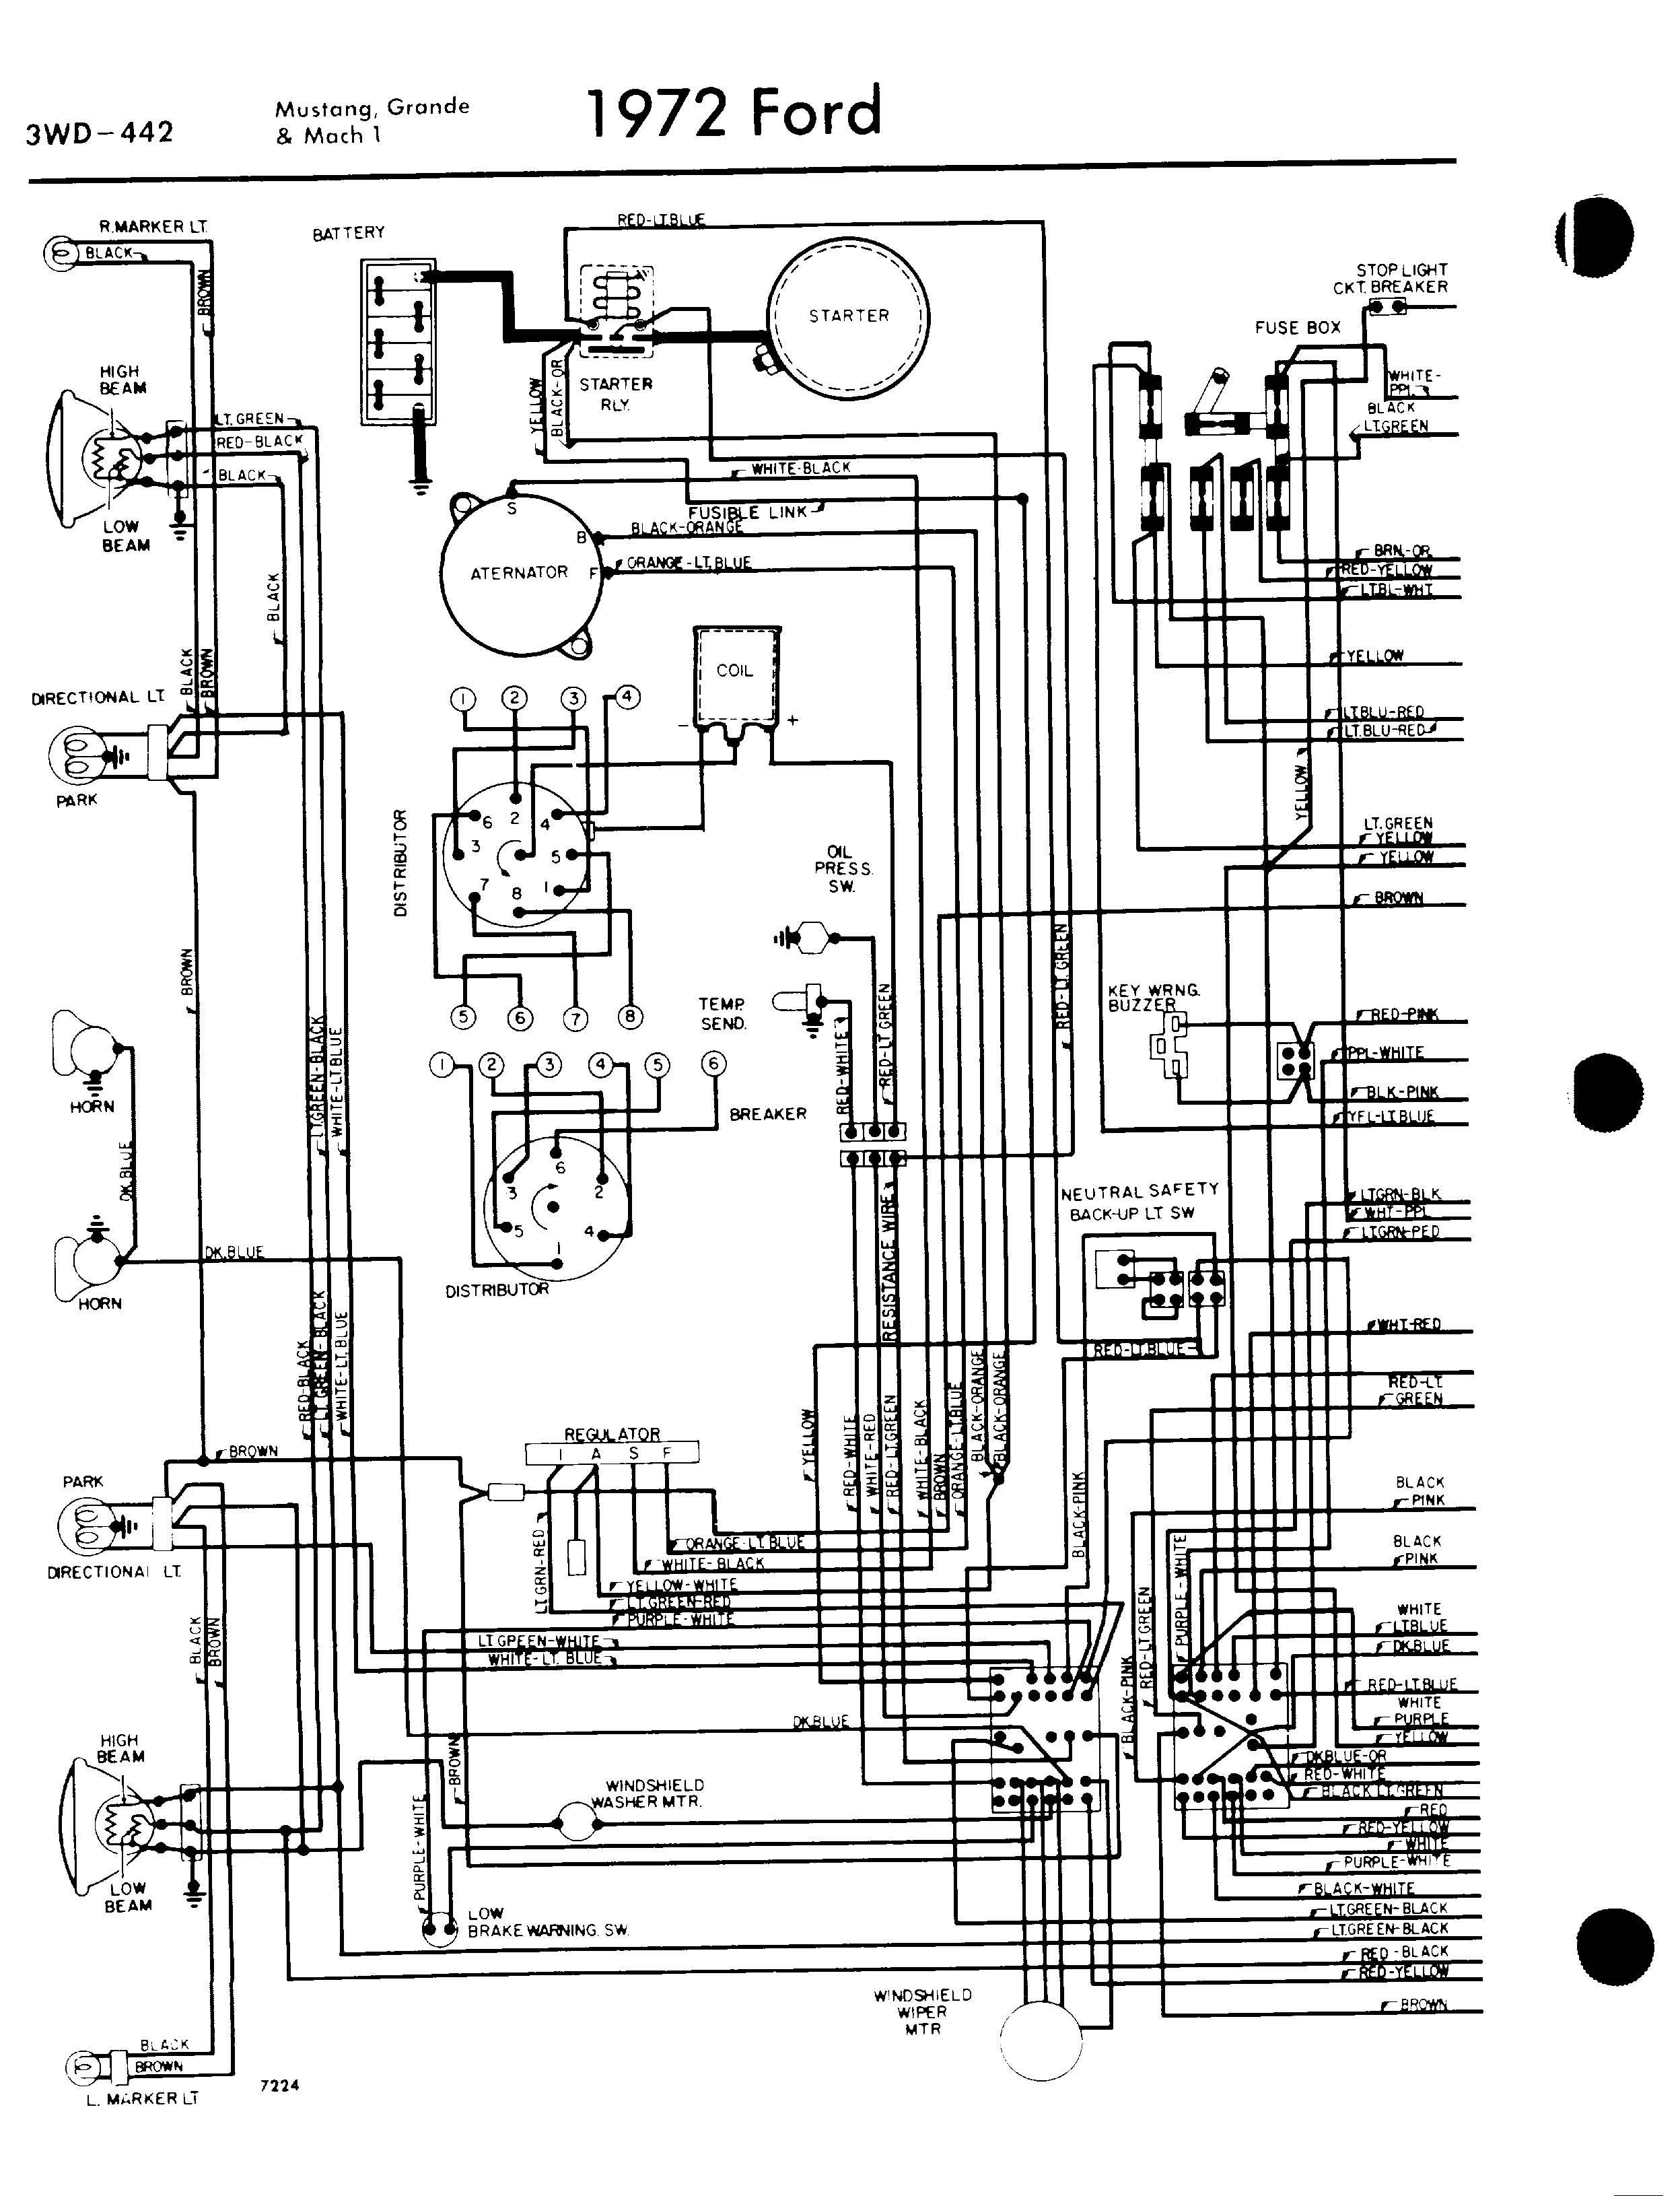 Phenomenal Harness Diagram Ford Mustang Ignition Switch Wiring Diagram 1973 Wiring Cloud Apomsimijknierdonabenoleattemohammedshrineorg